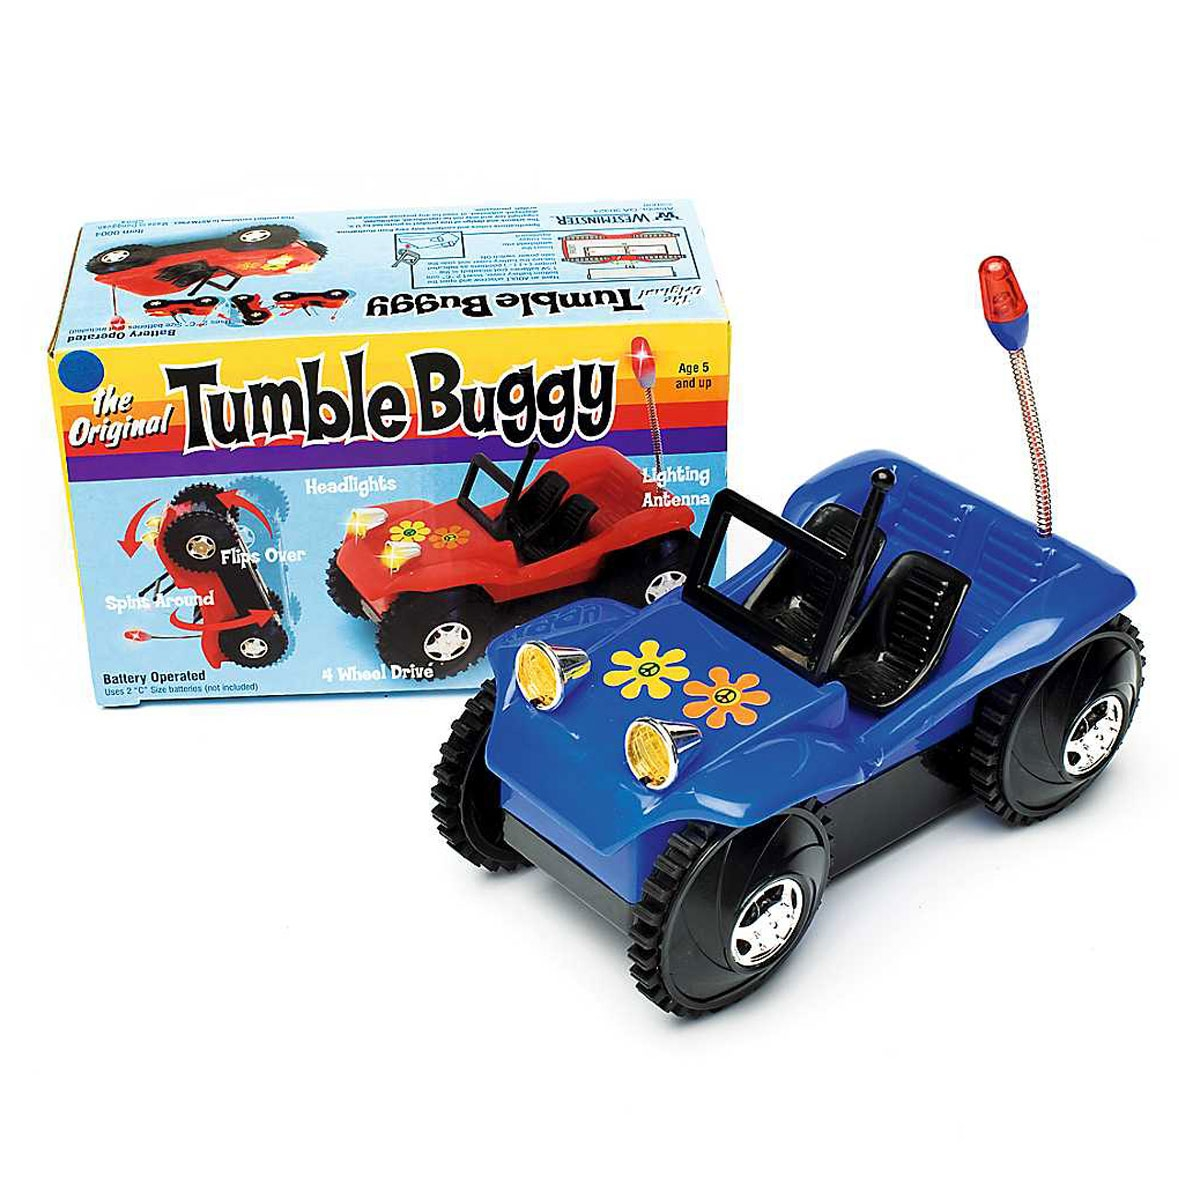 Games Other Games The Original Lighting Antenna Flipping Spinning Tumble Buggy